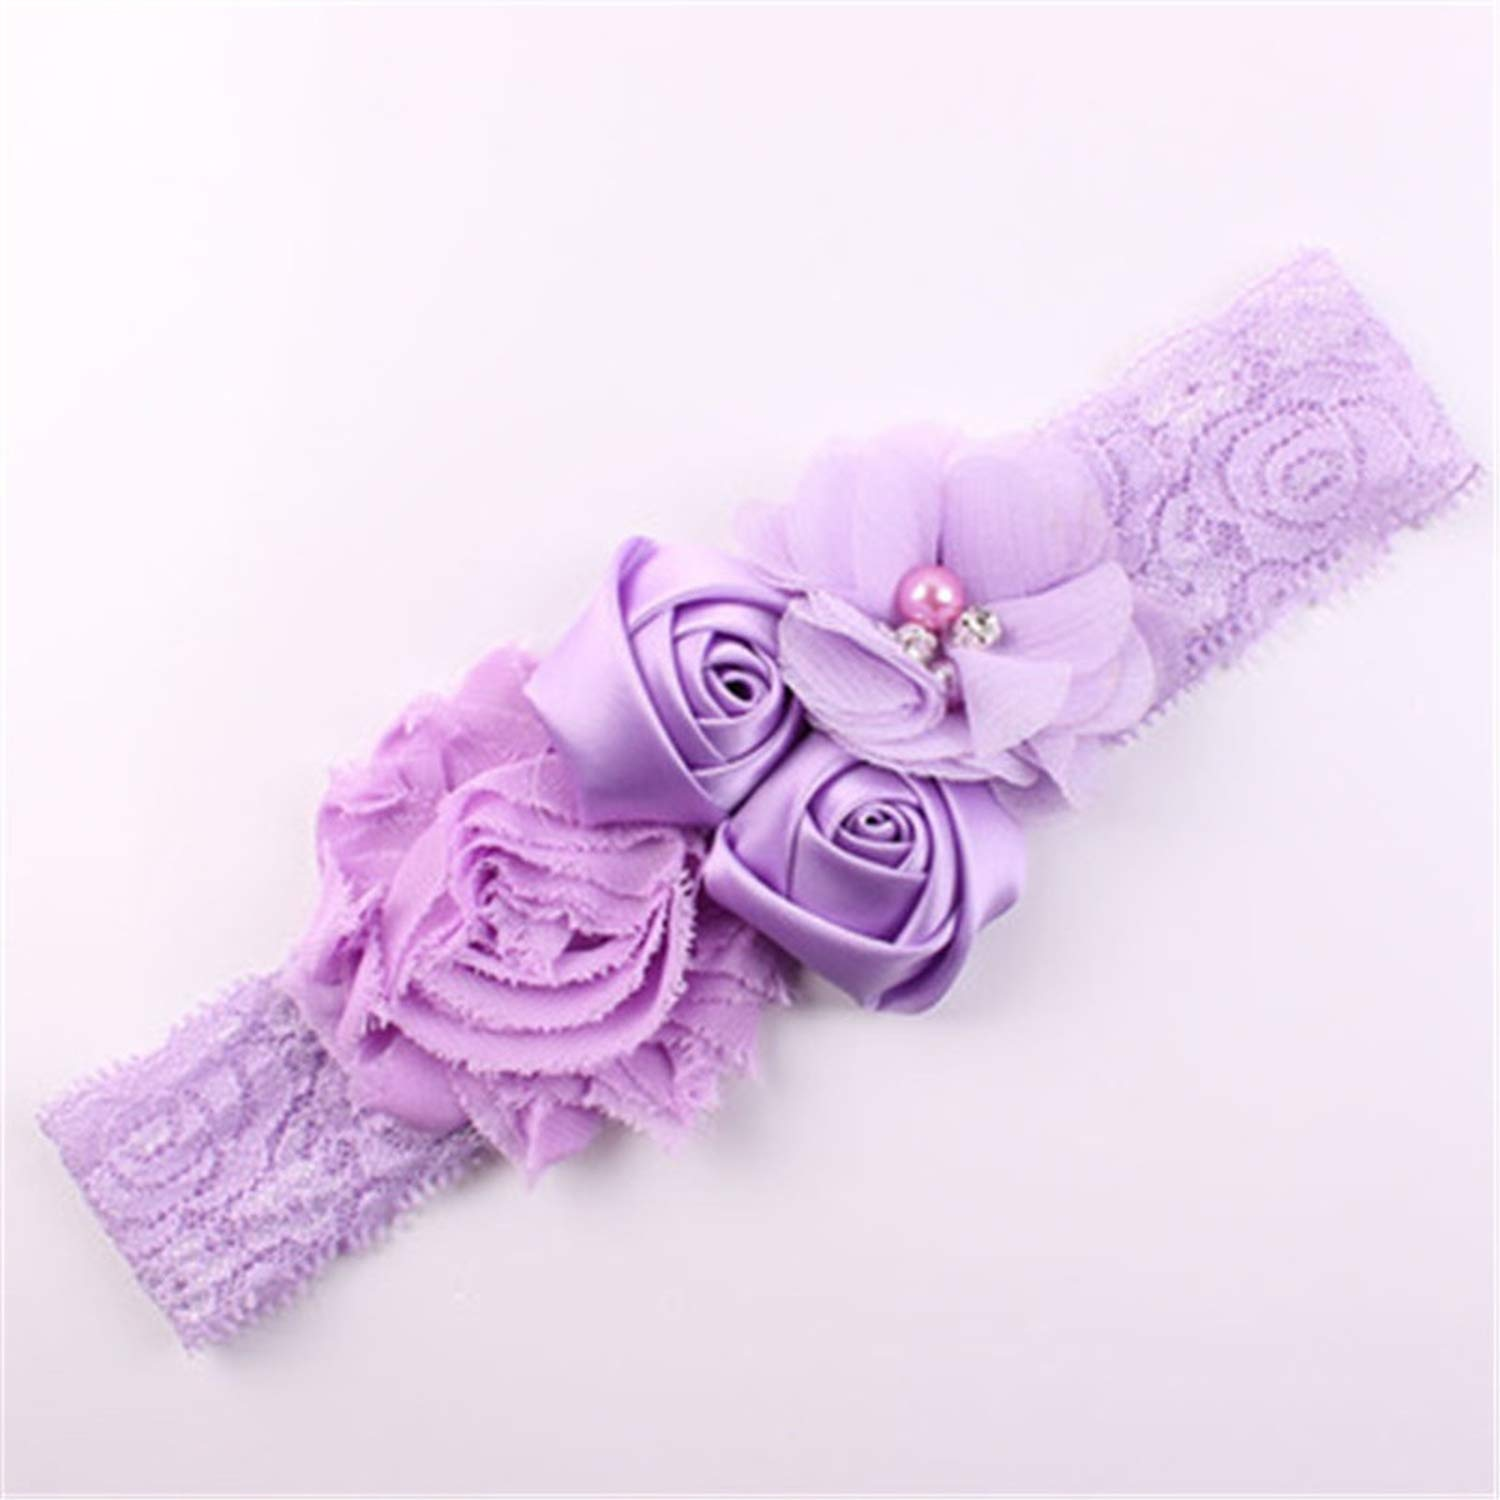 Lace Baby Headband Chic Lace Flower Princess Girlsborn Infant Headwear Bow Headdress For Toddler Hair Accessories,Dark Purple